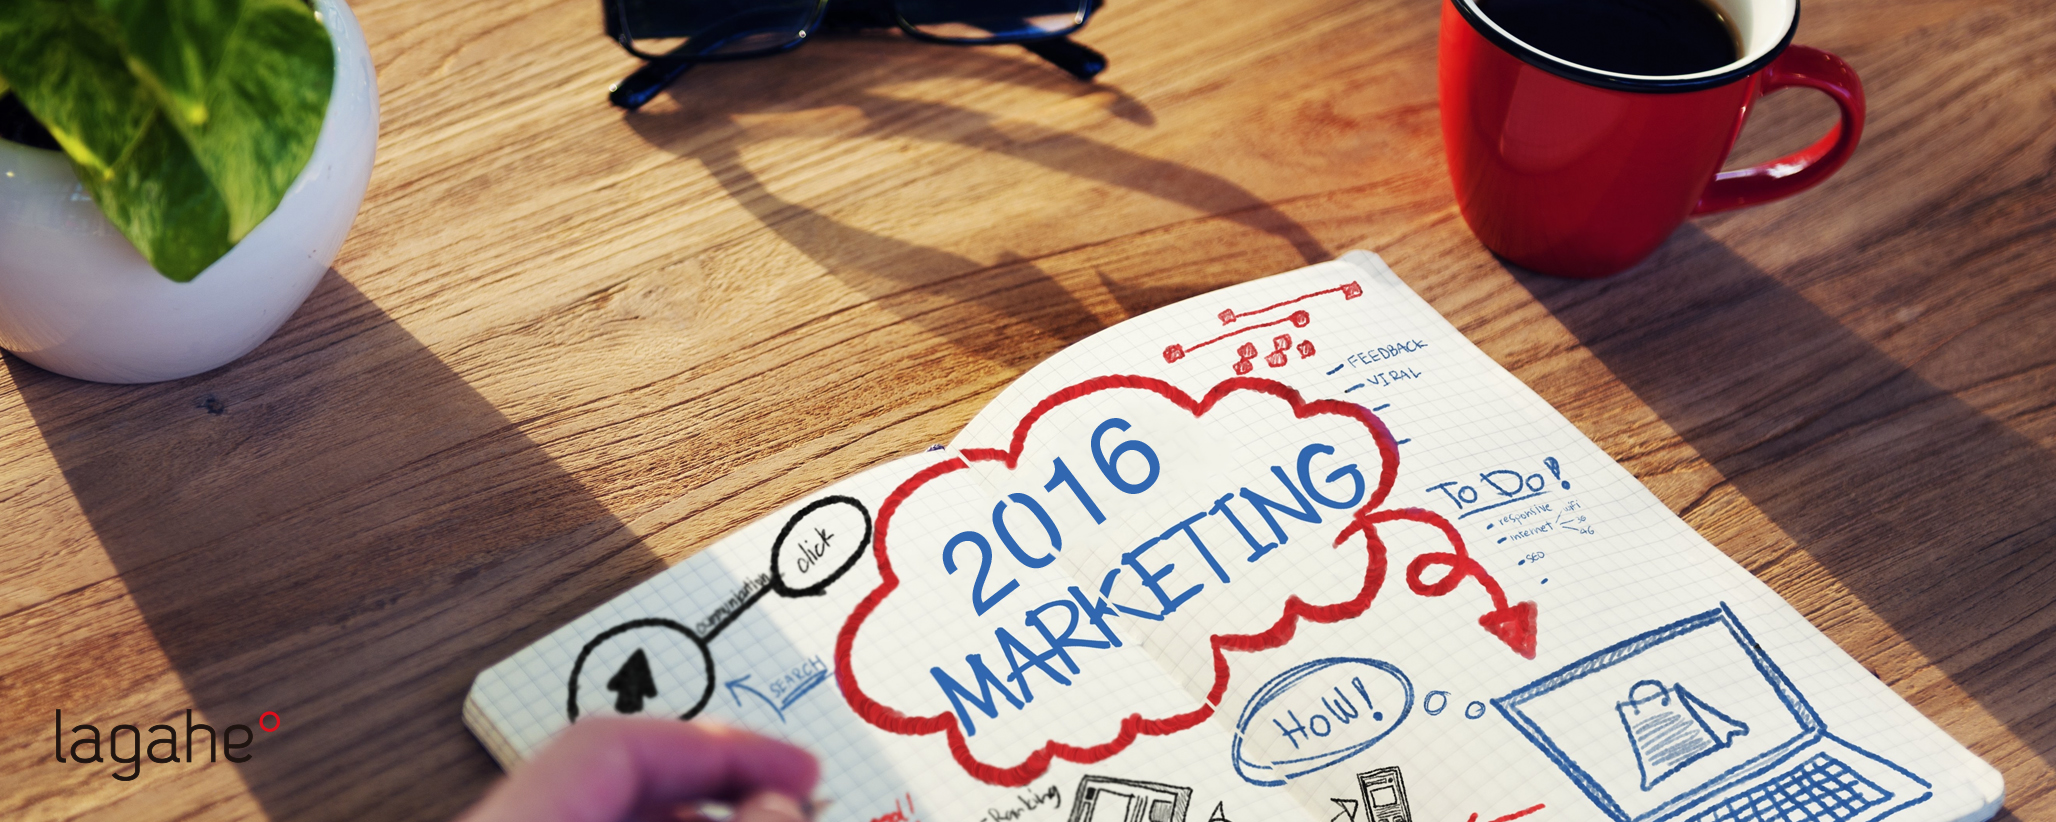 Tendencias de marketing 2016 Lagahe